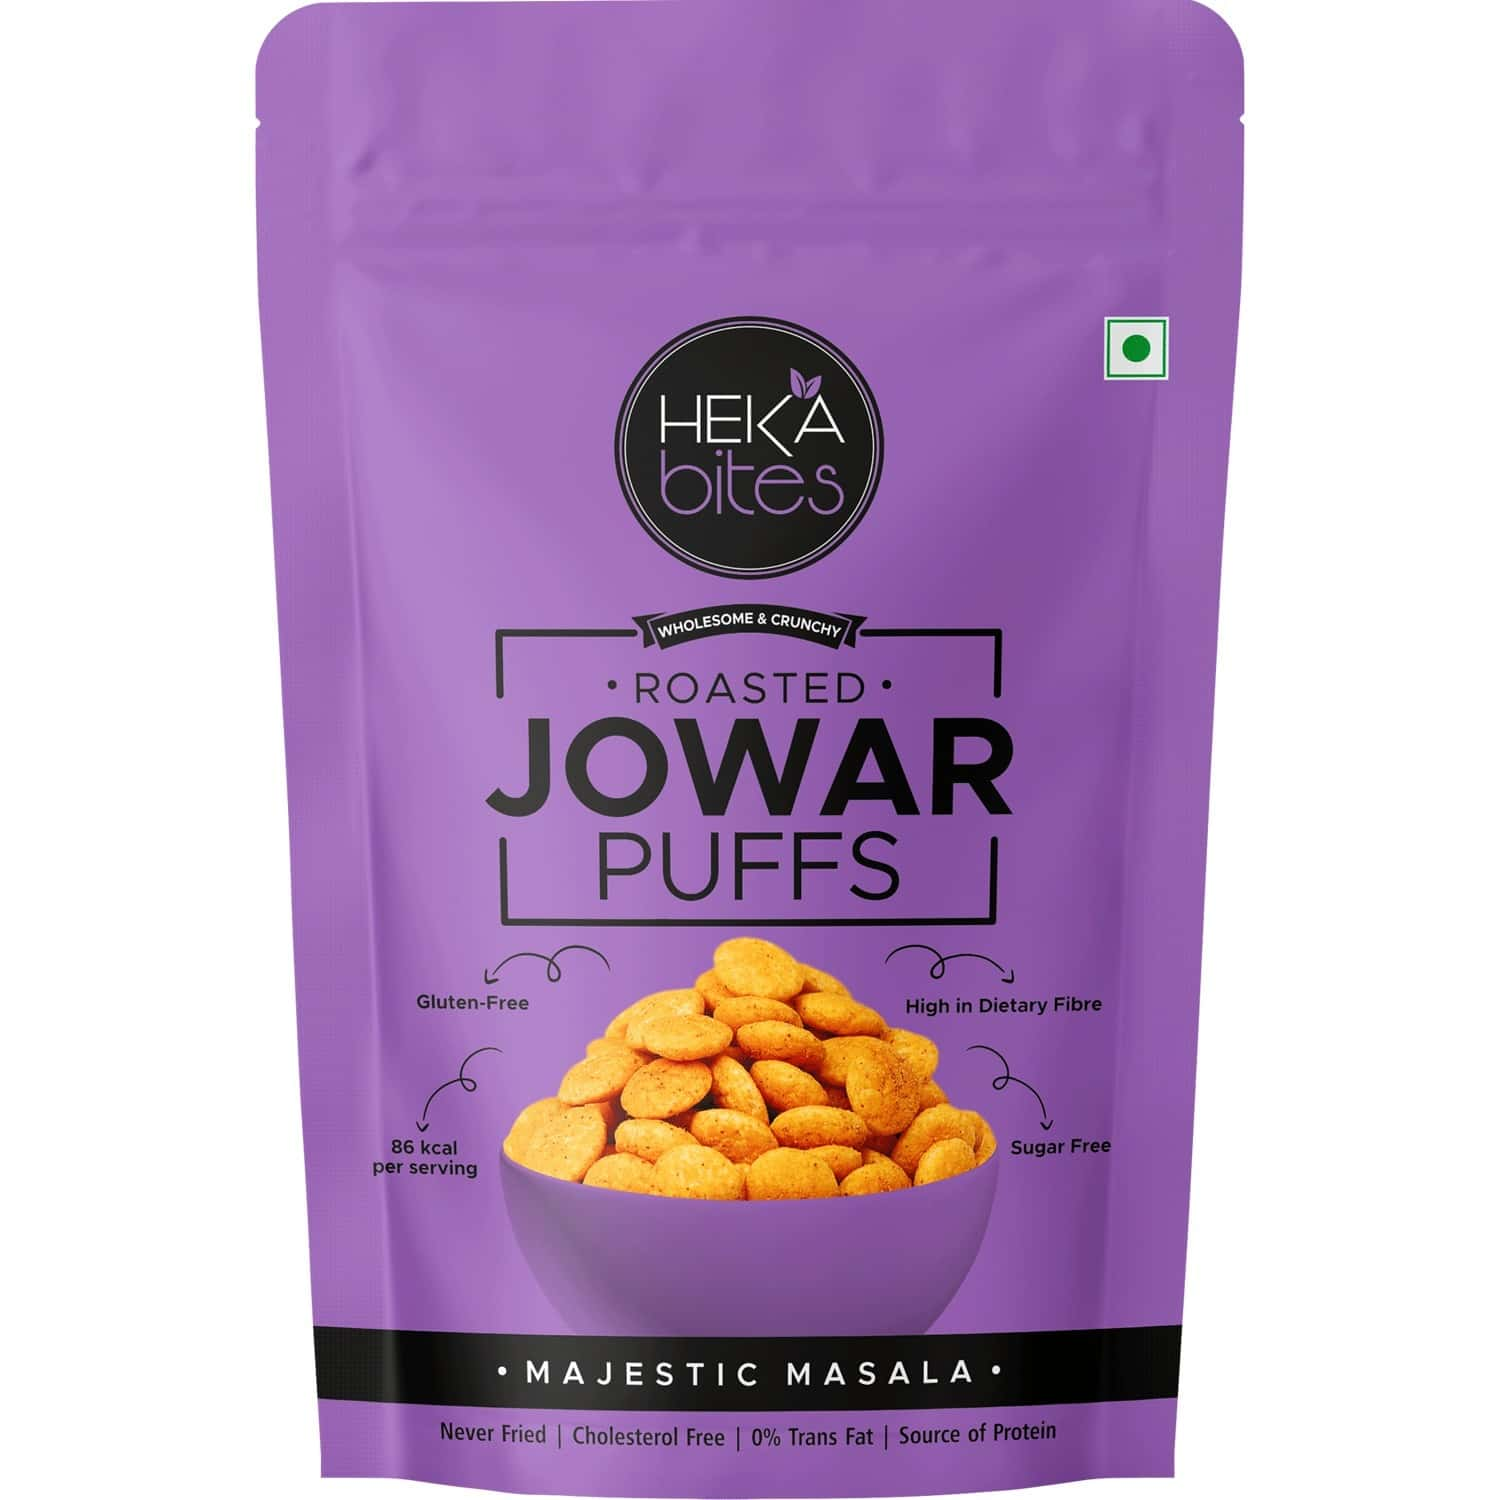 Heka Bites Roasted Jowar Puffs Majestic Masala - Pack Of 1 X 40g  low Calorie & Healthy Snacks